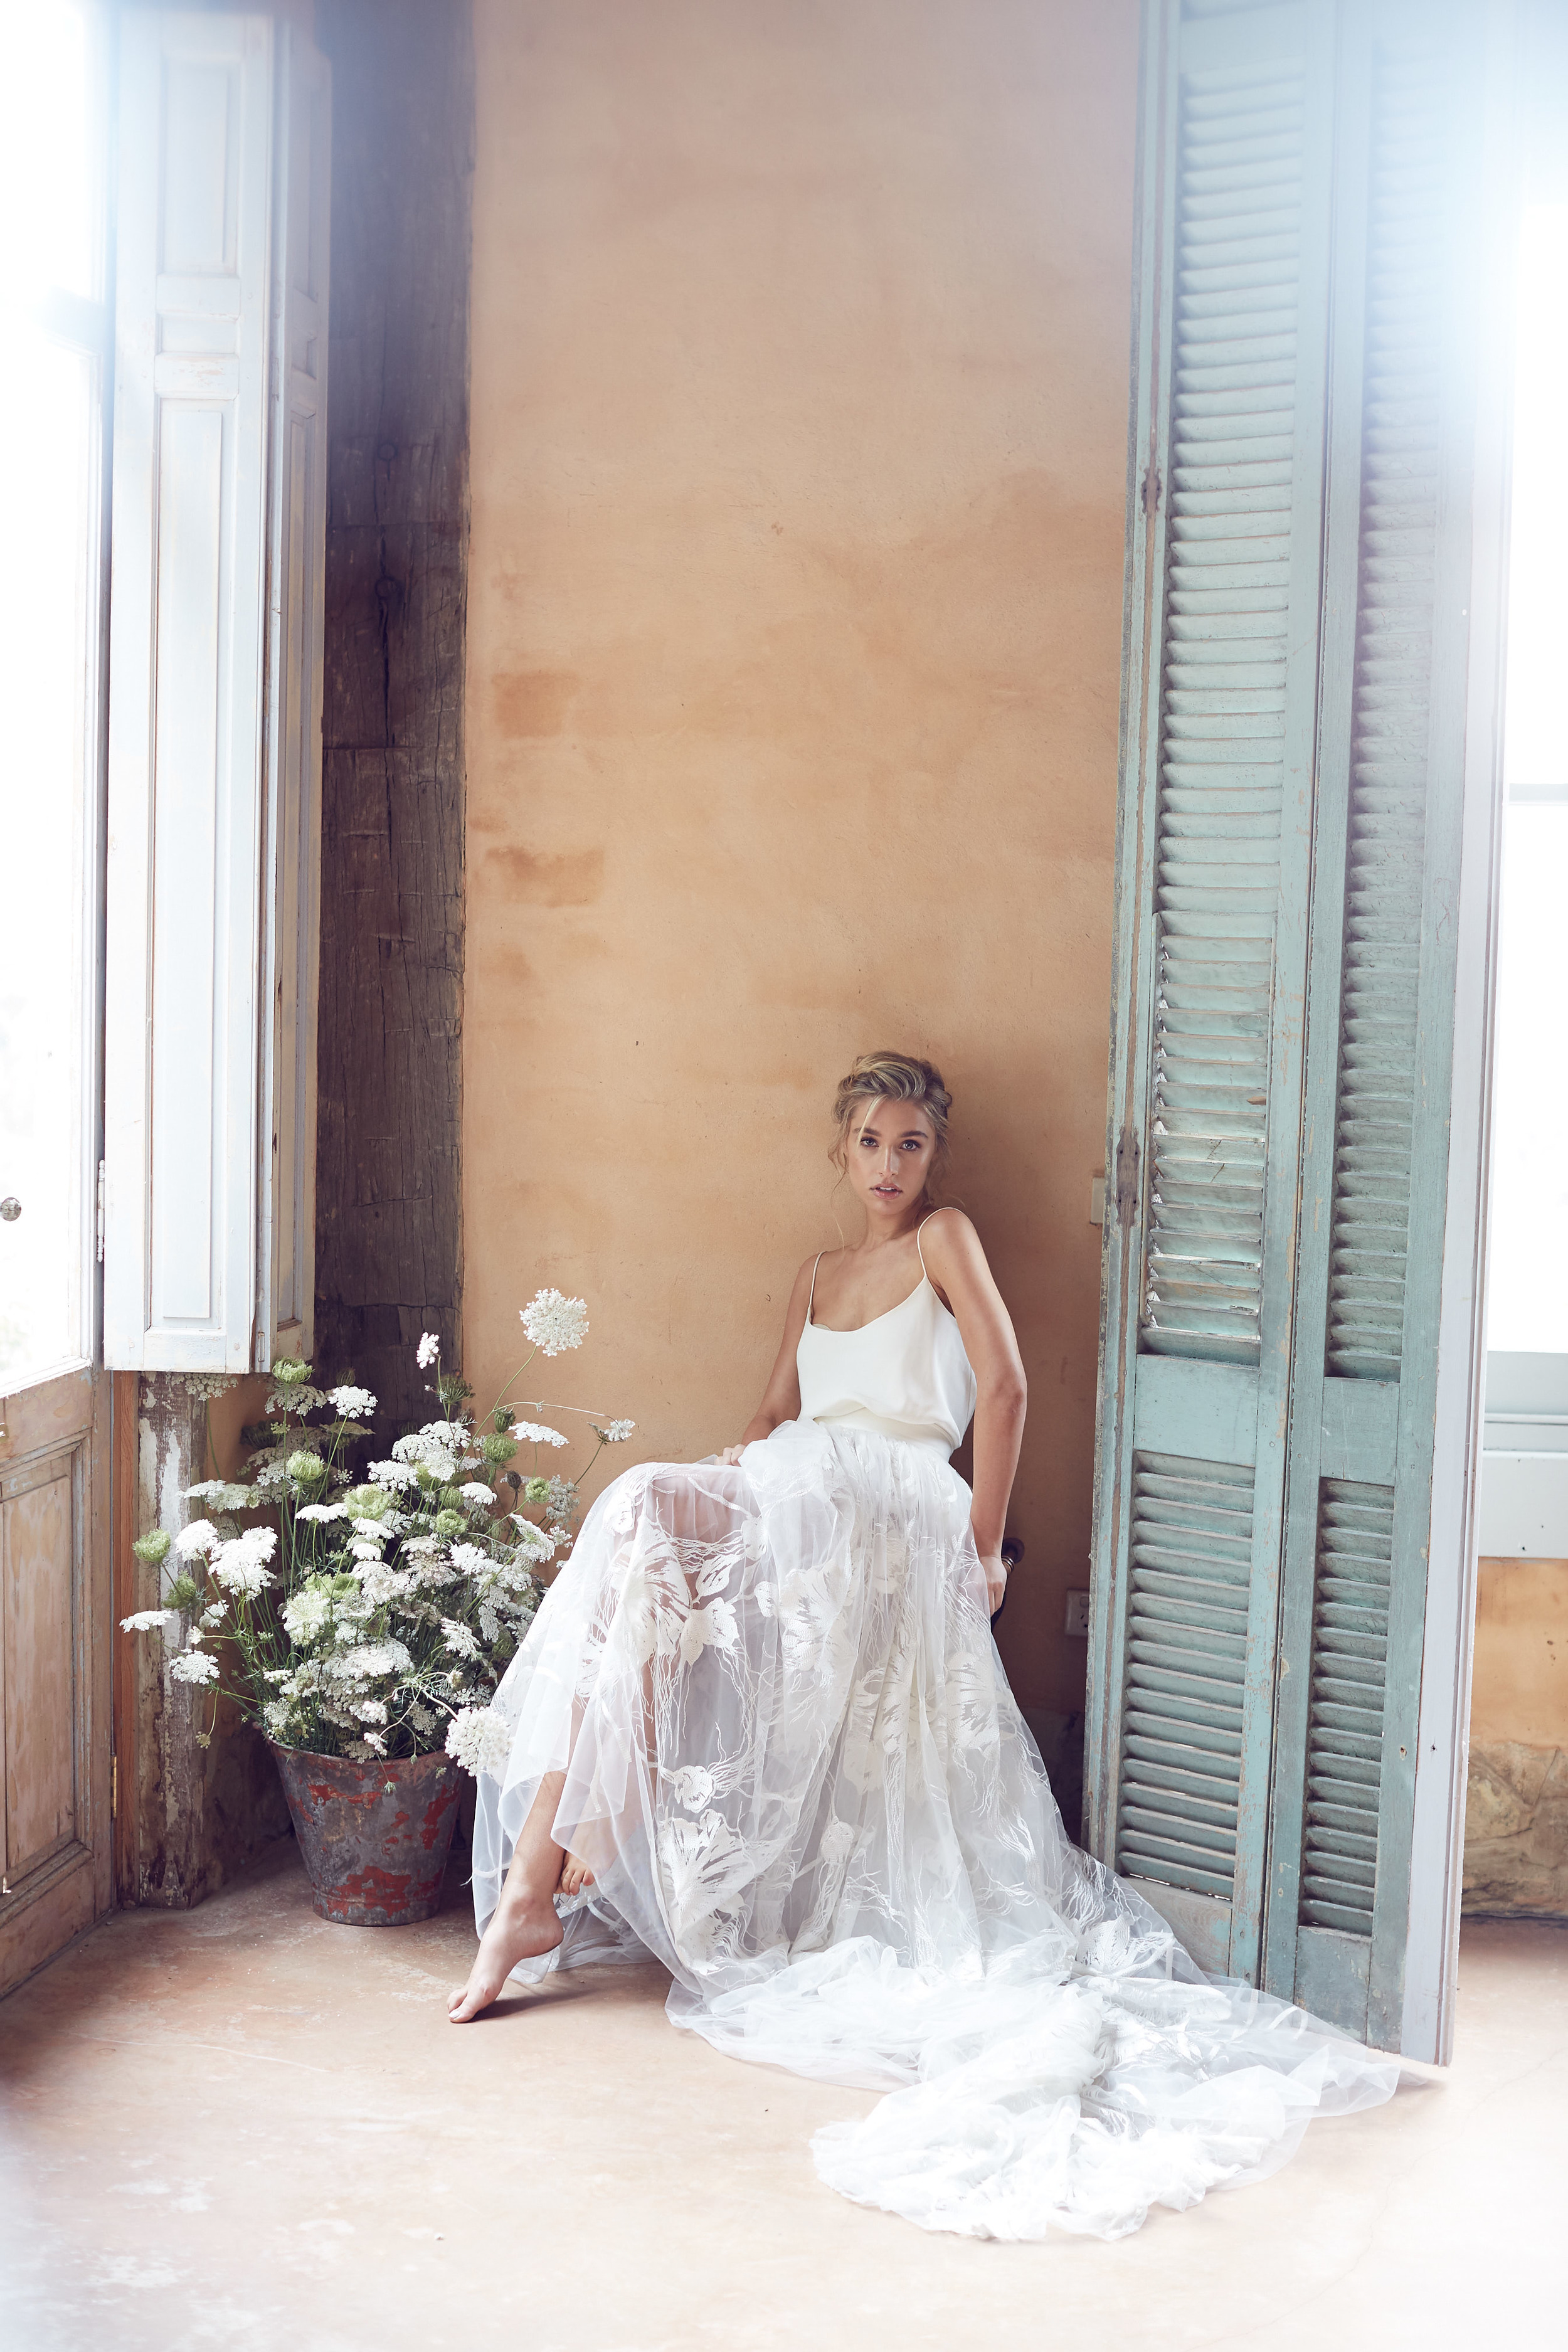 Tuscany wedding inspiration by Lost In Love Photography